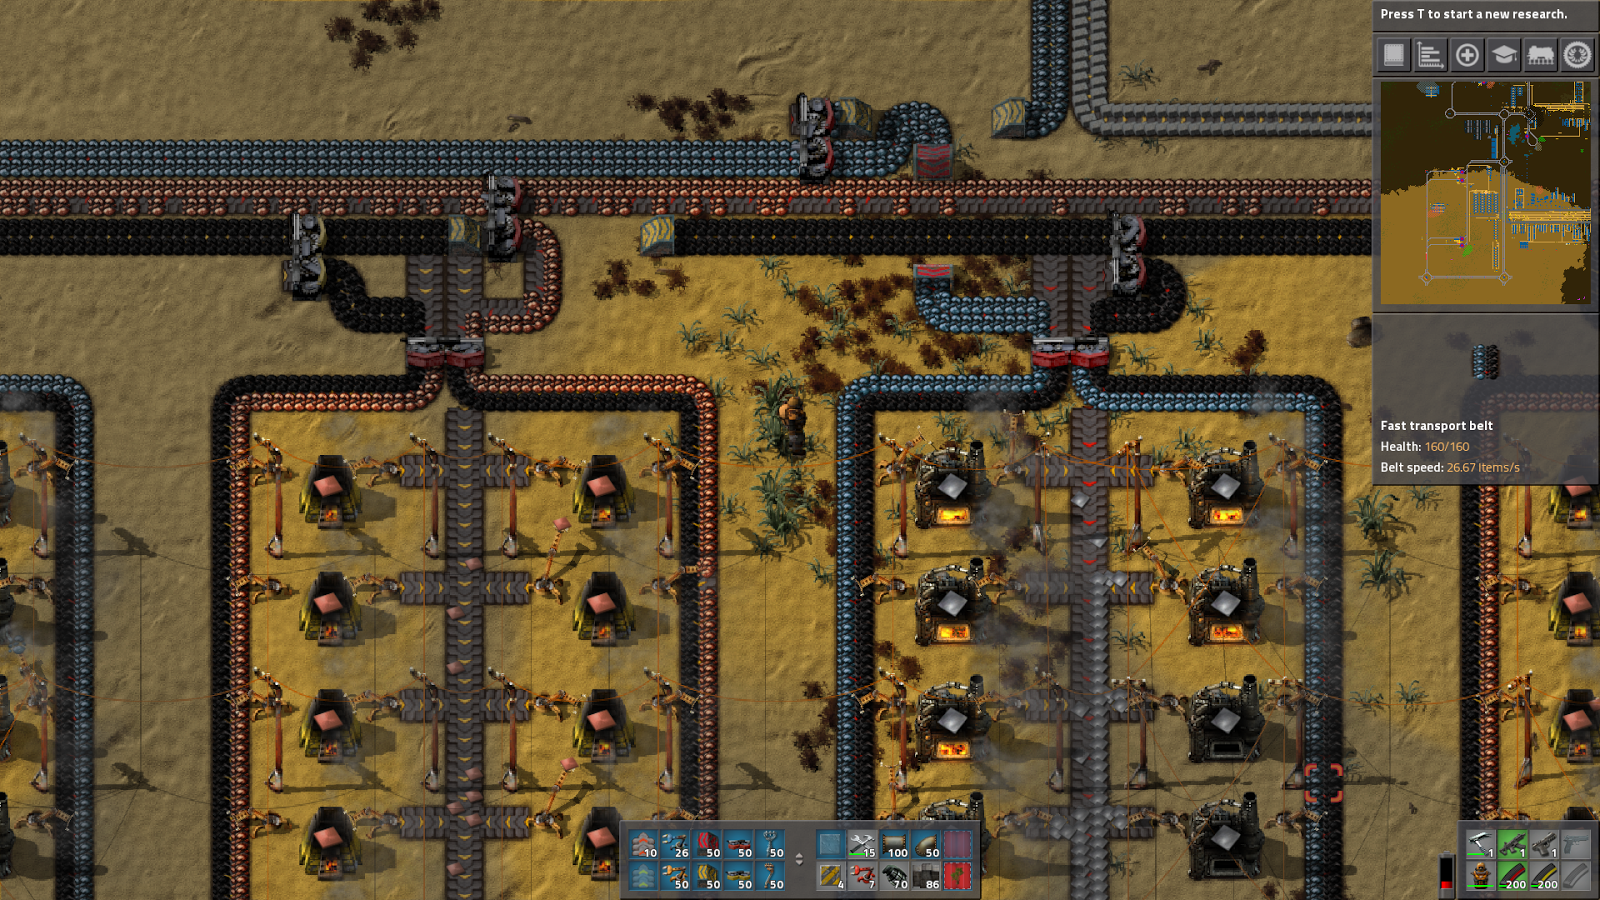 Factorio: Smelting Blueprint